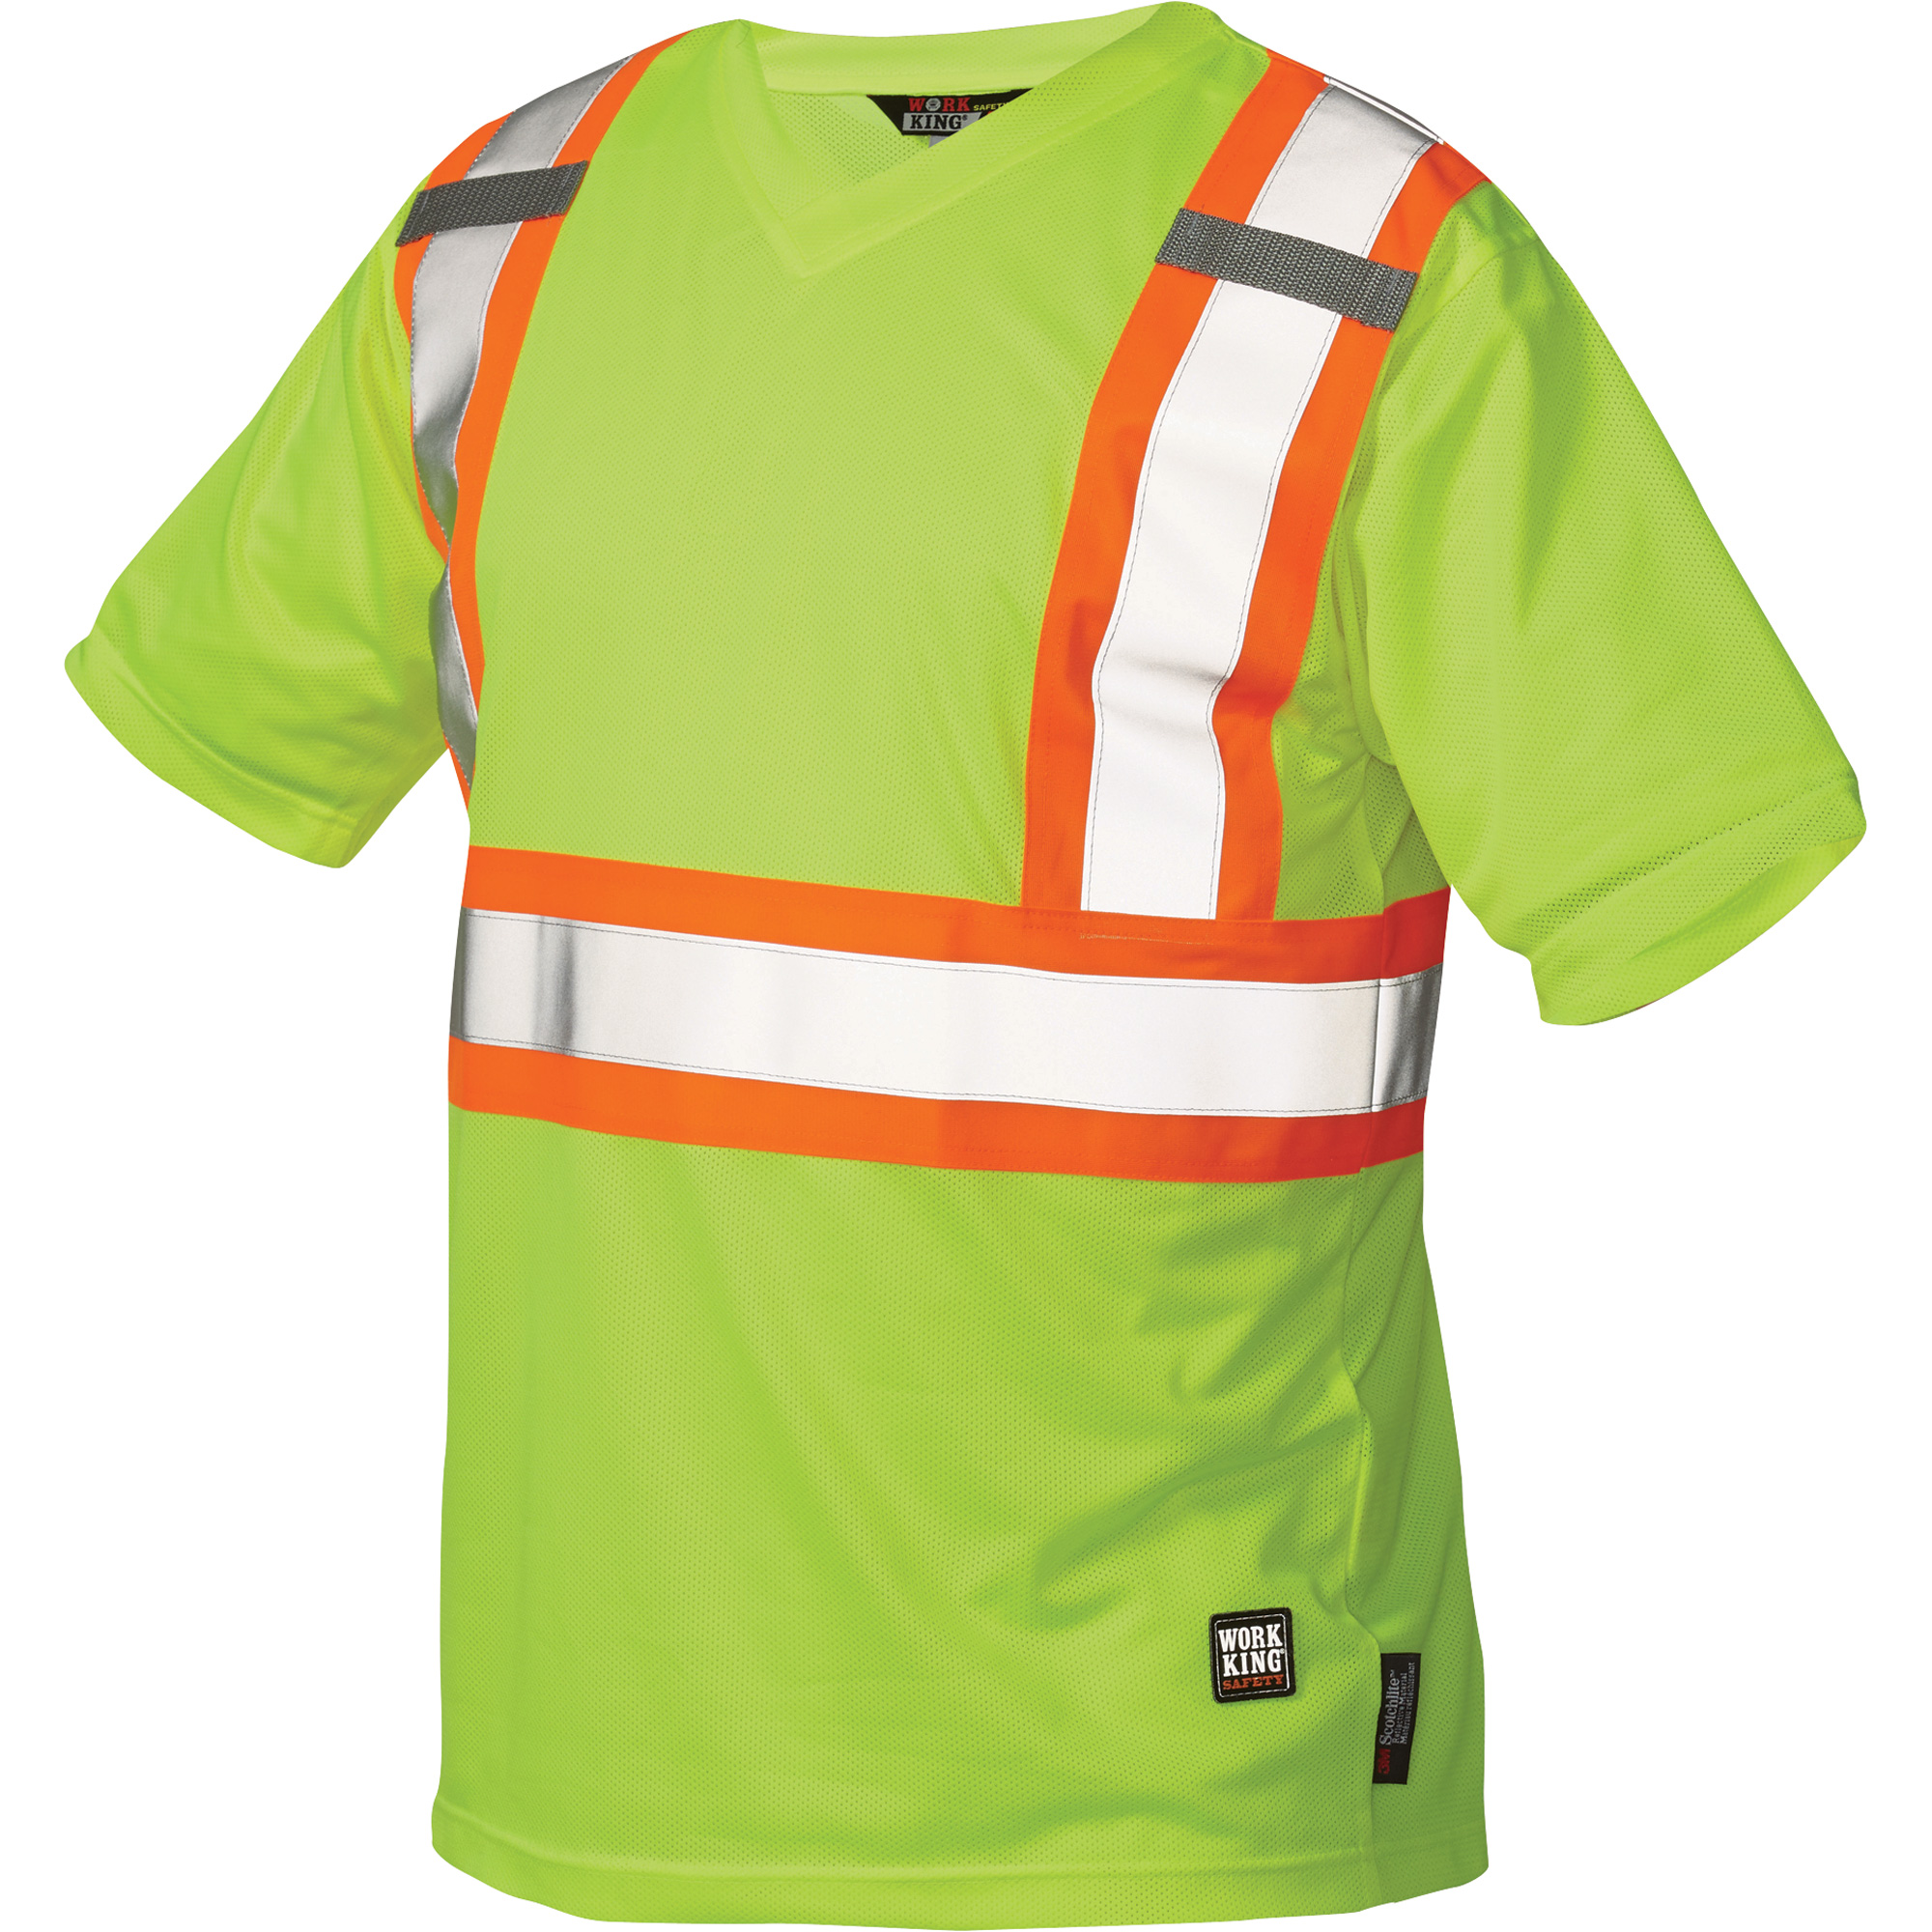 Work King Men 39 S Class 2 High Visibility Micro Mesh Safety